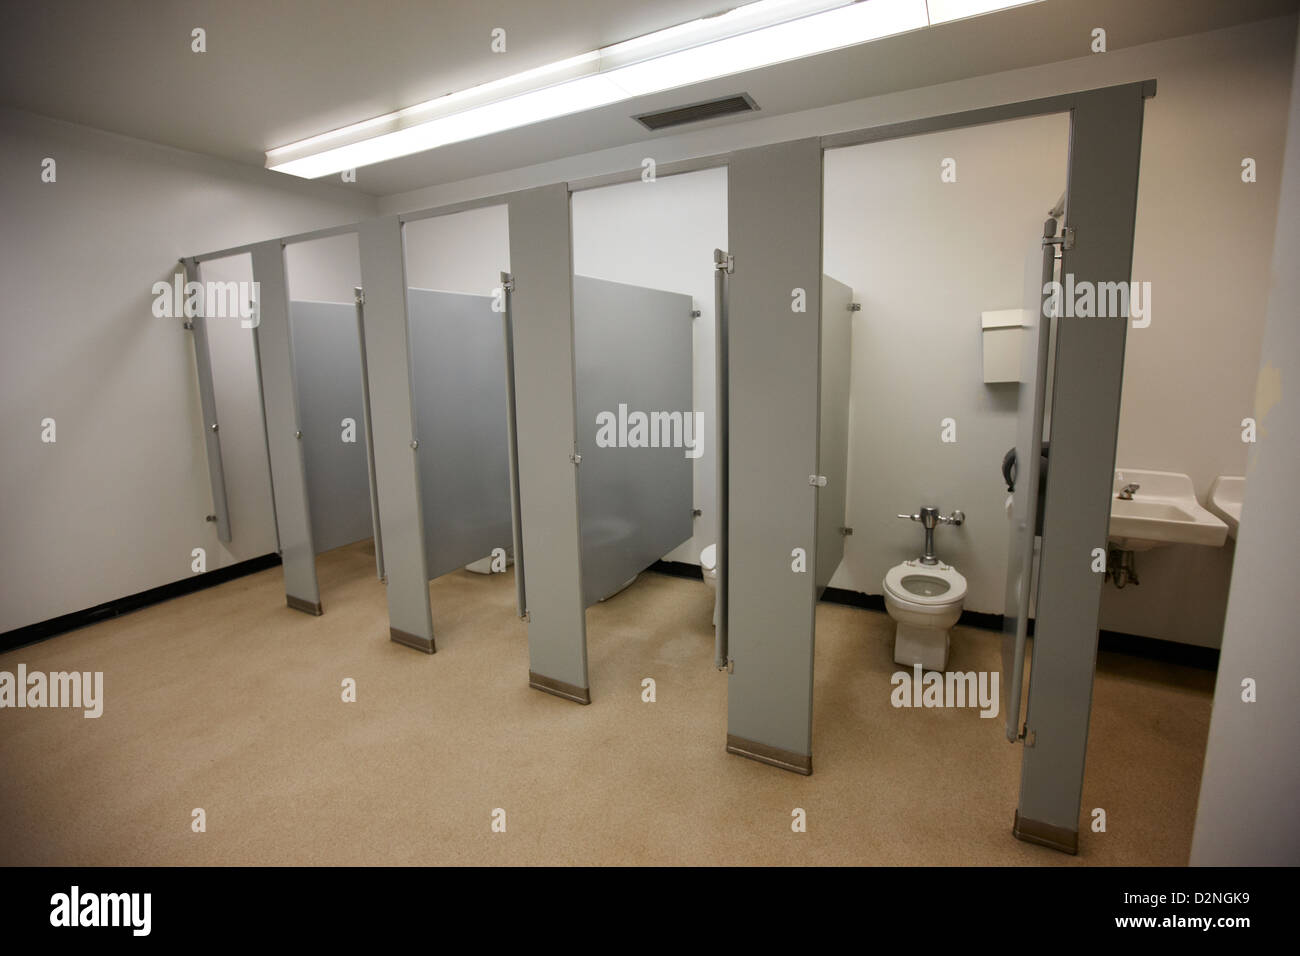 Bathroom Stalls In Europe bathroom stalls stock photos & bathroom stalls stock images - alamy